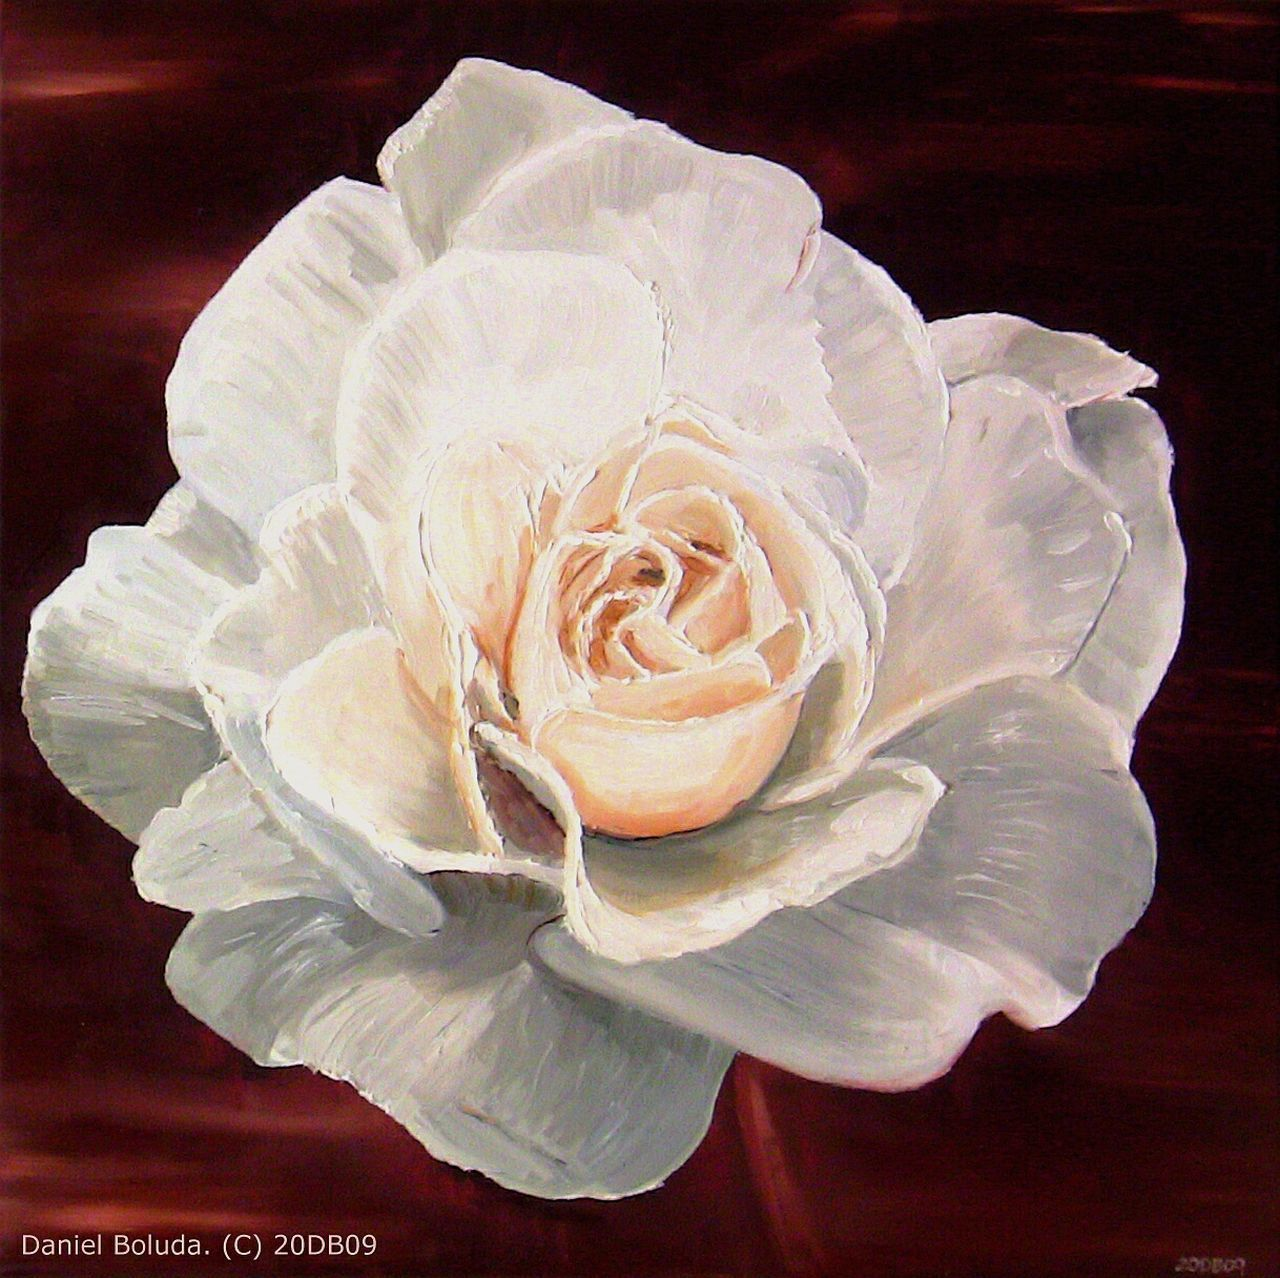 CLOSE-UP OF ROSE OVER WHITE BACKGROUND